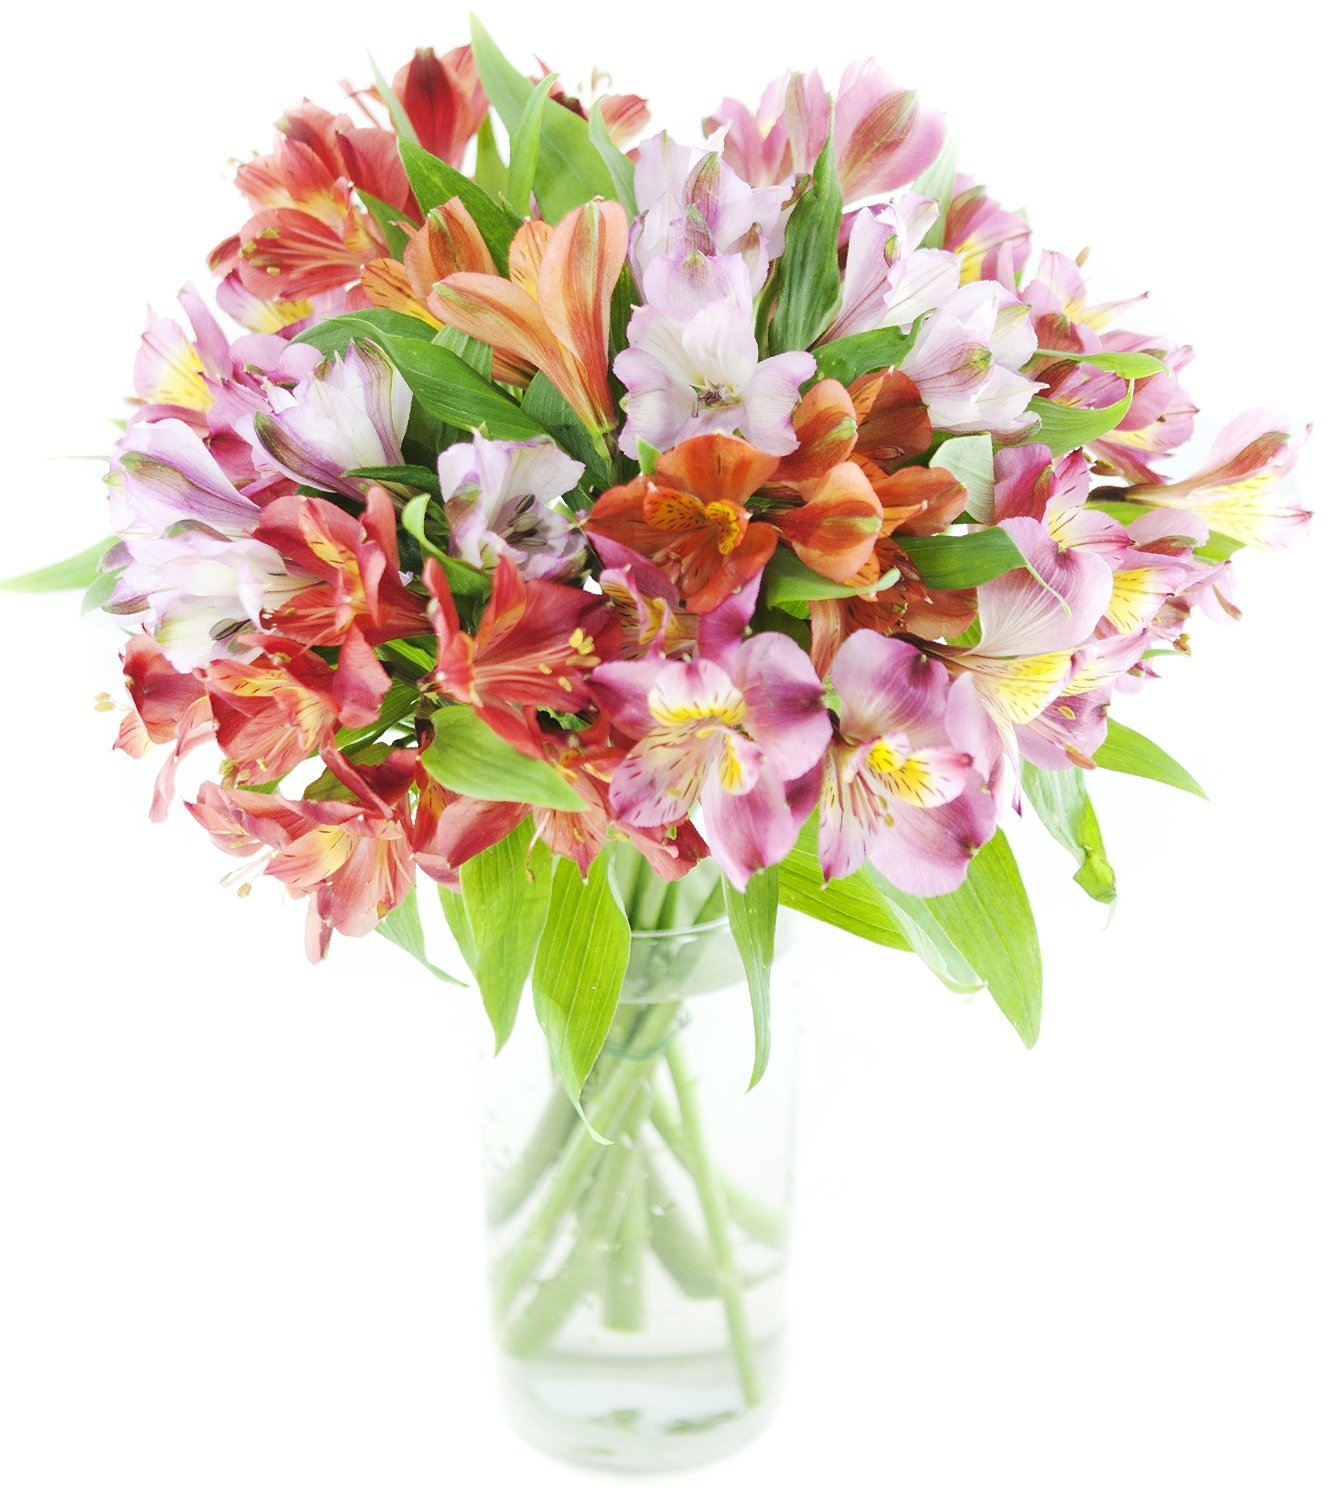 Premium Alstromeria Peruvian Lilies by Eflowerwholesale (100 blooms with Vase) by eflowerwholesale